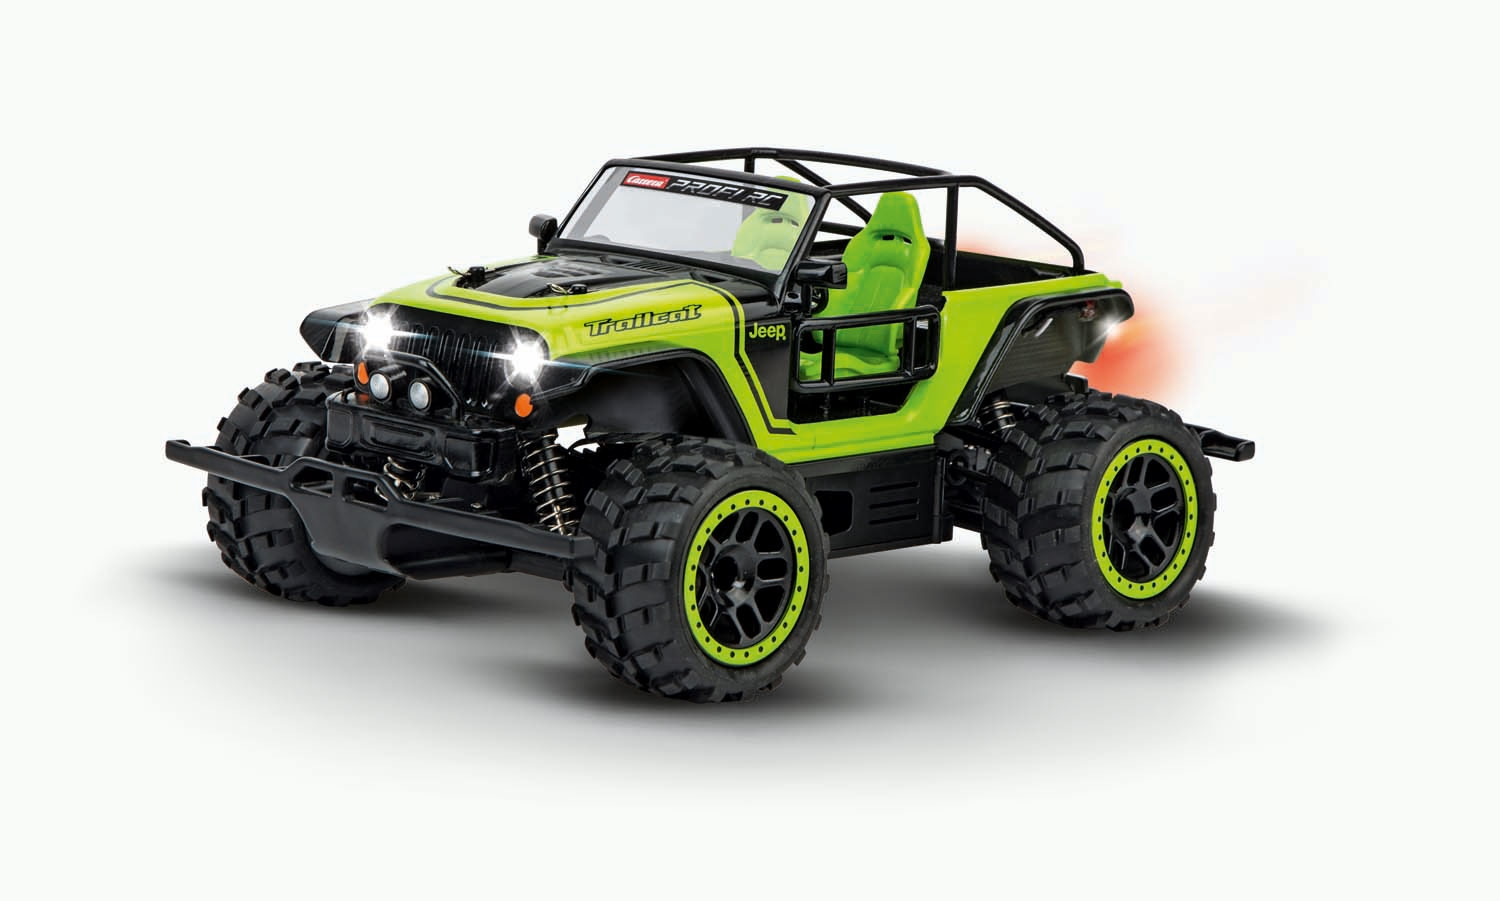 CARRERA RC 2,4GHz JEEP (R) TRAILCAT -PX- PROFIL (C) RC cod. 370183019